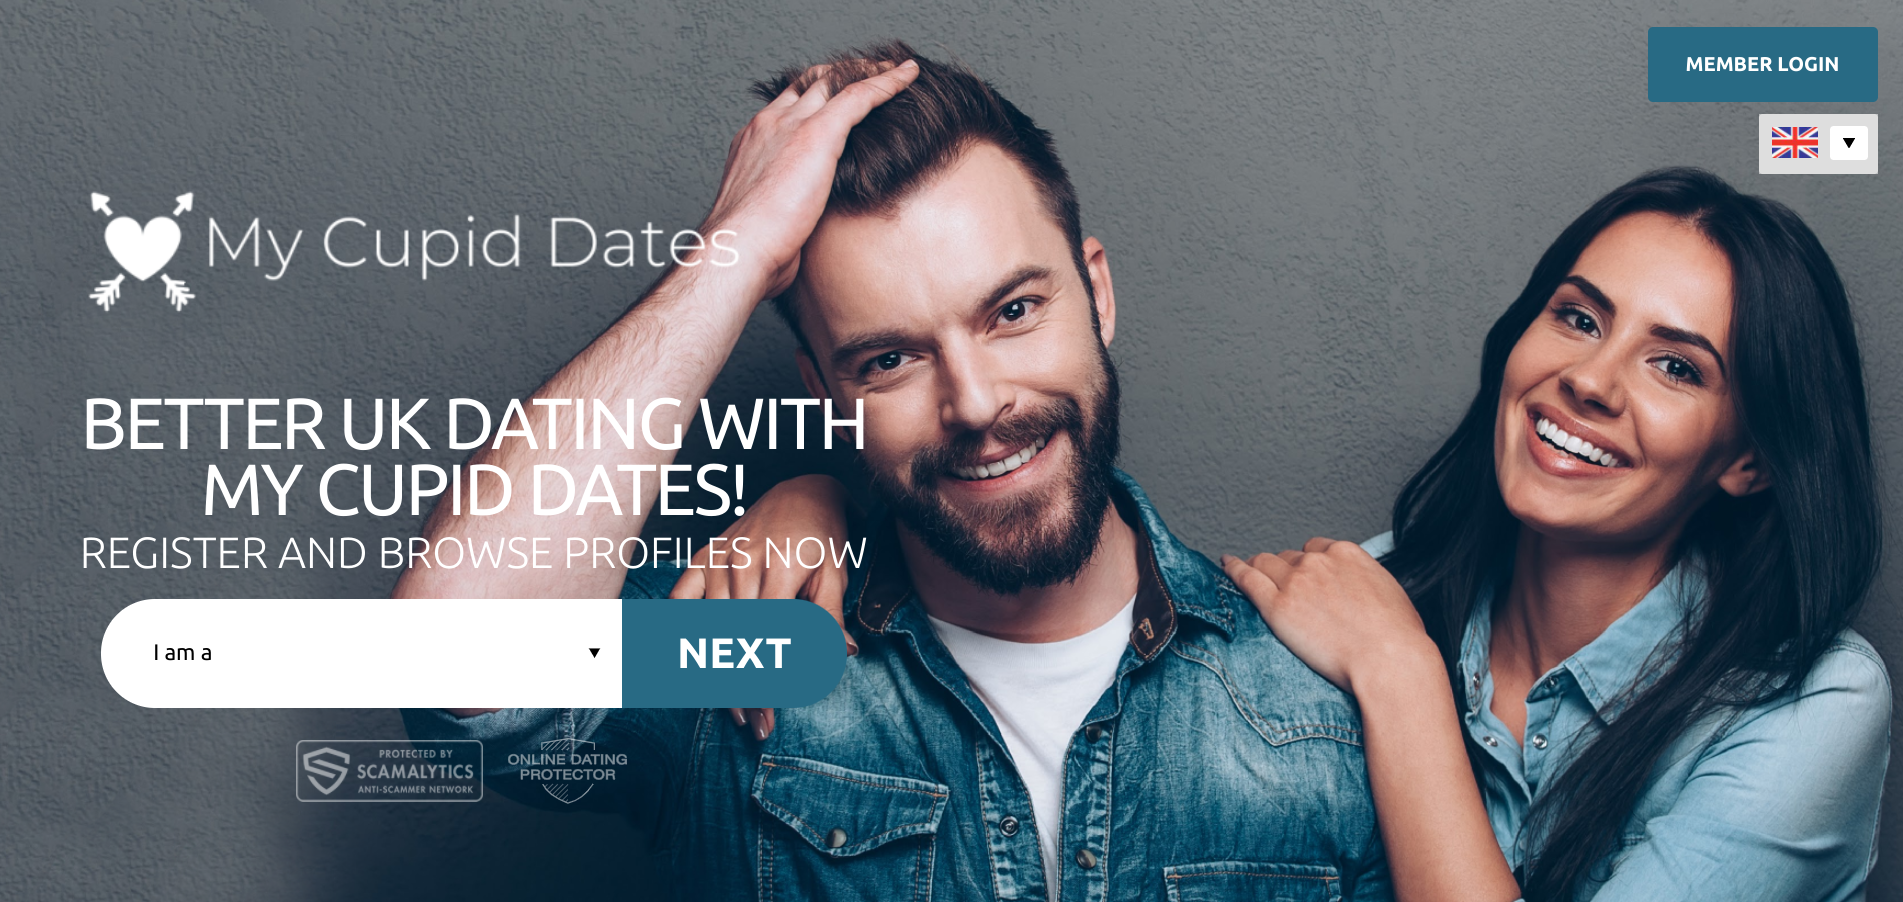 MyCupidDates.com Launches With WhiteLabelDating.com